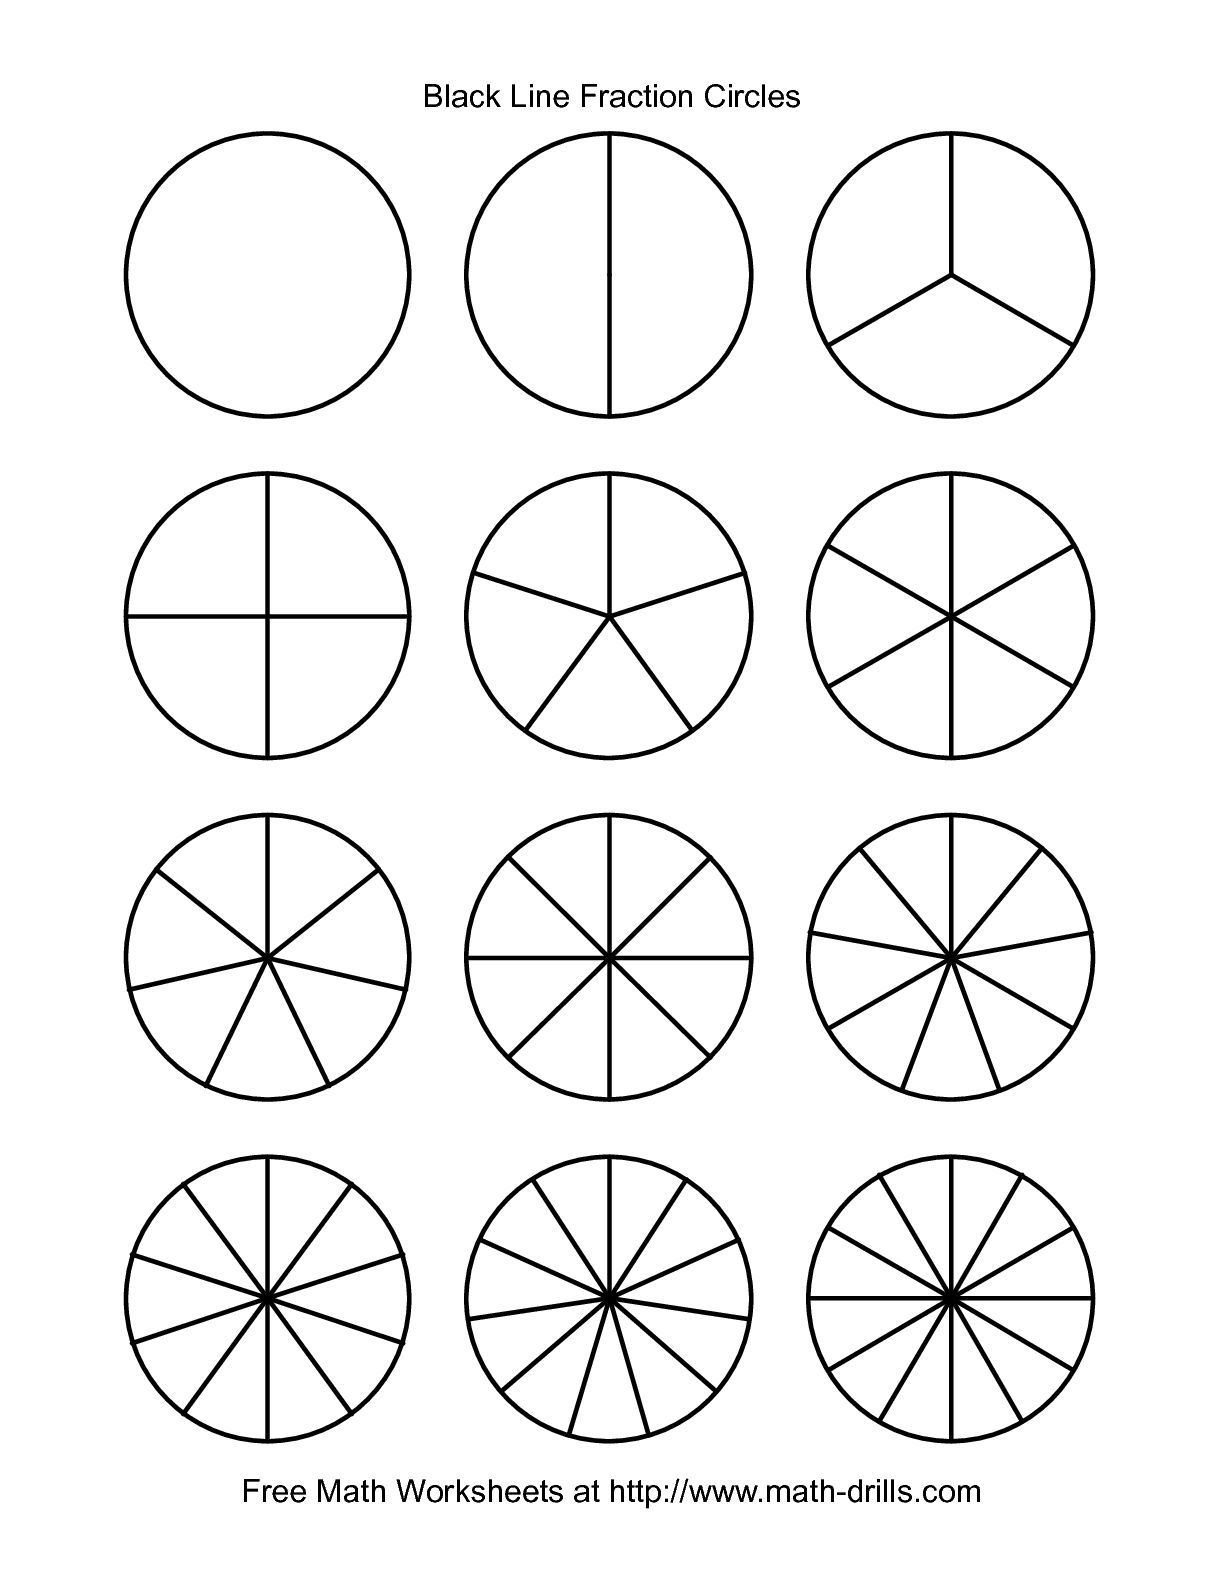 The Blackline Fraction Circles -- Small Unlabeled math worksheet from the  Fractions Worksheet page at